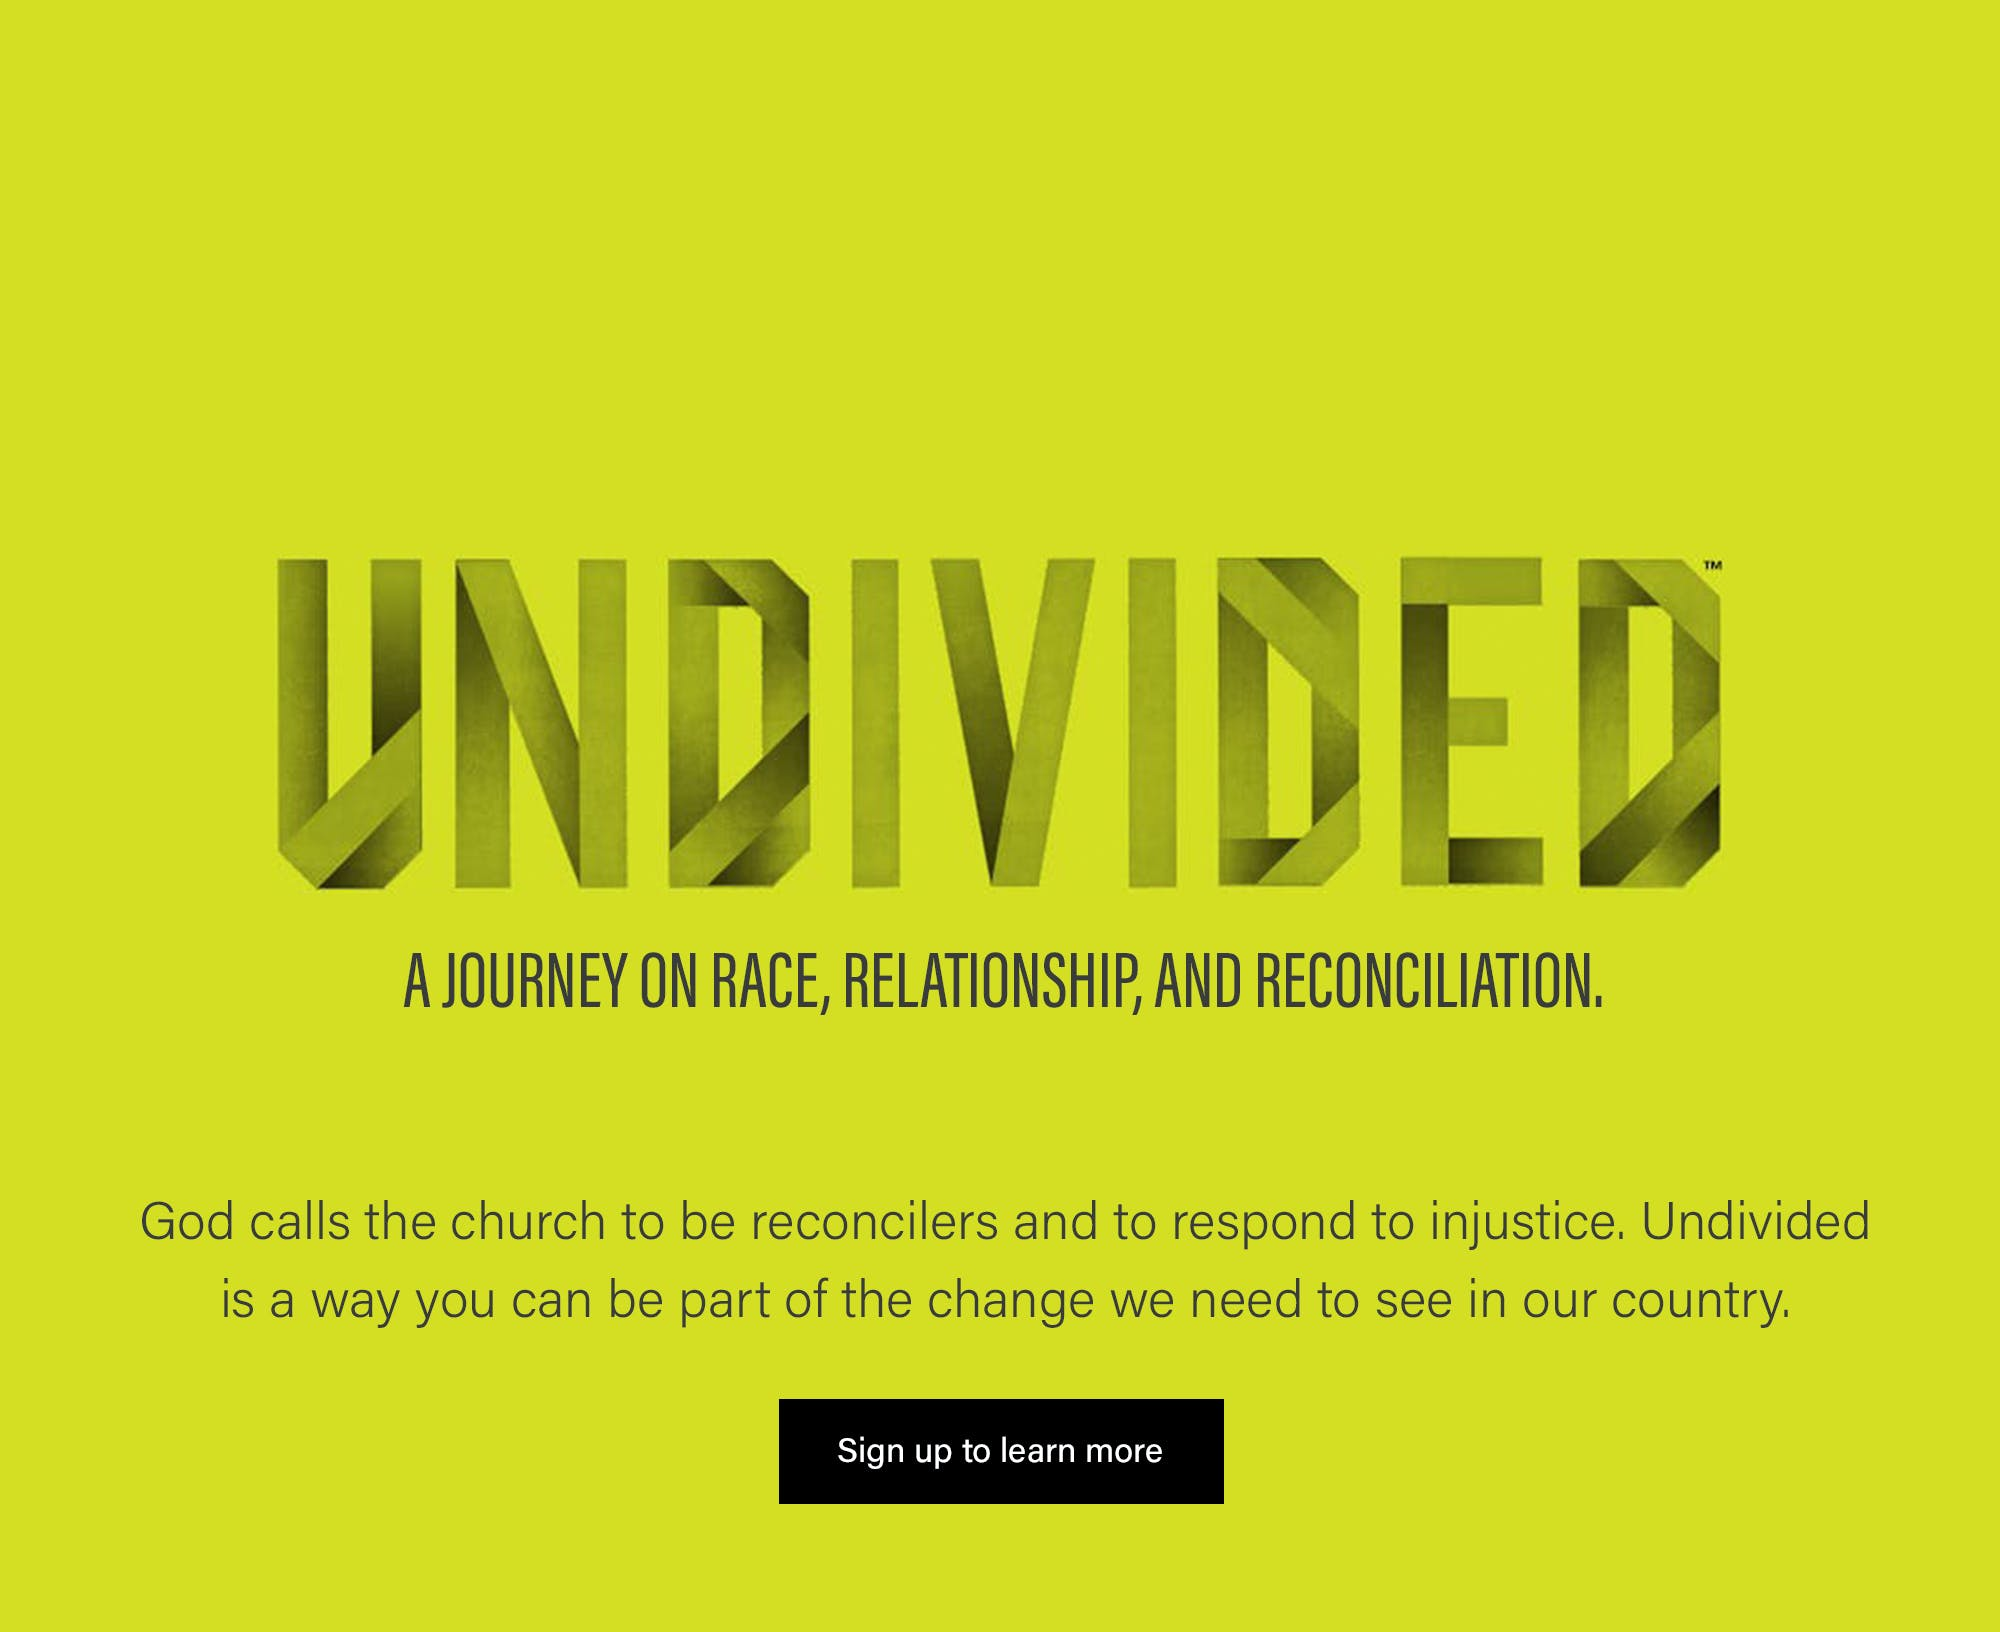 Undivided: A Journey on Race, Relationship and Reconciliation